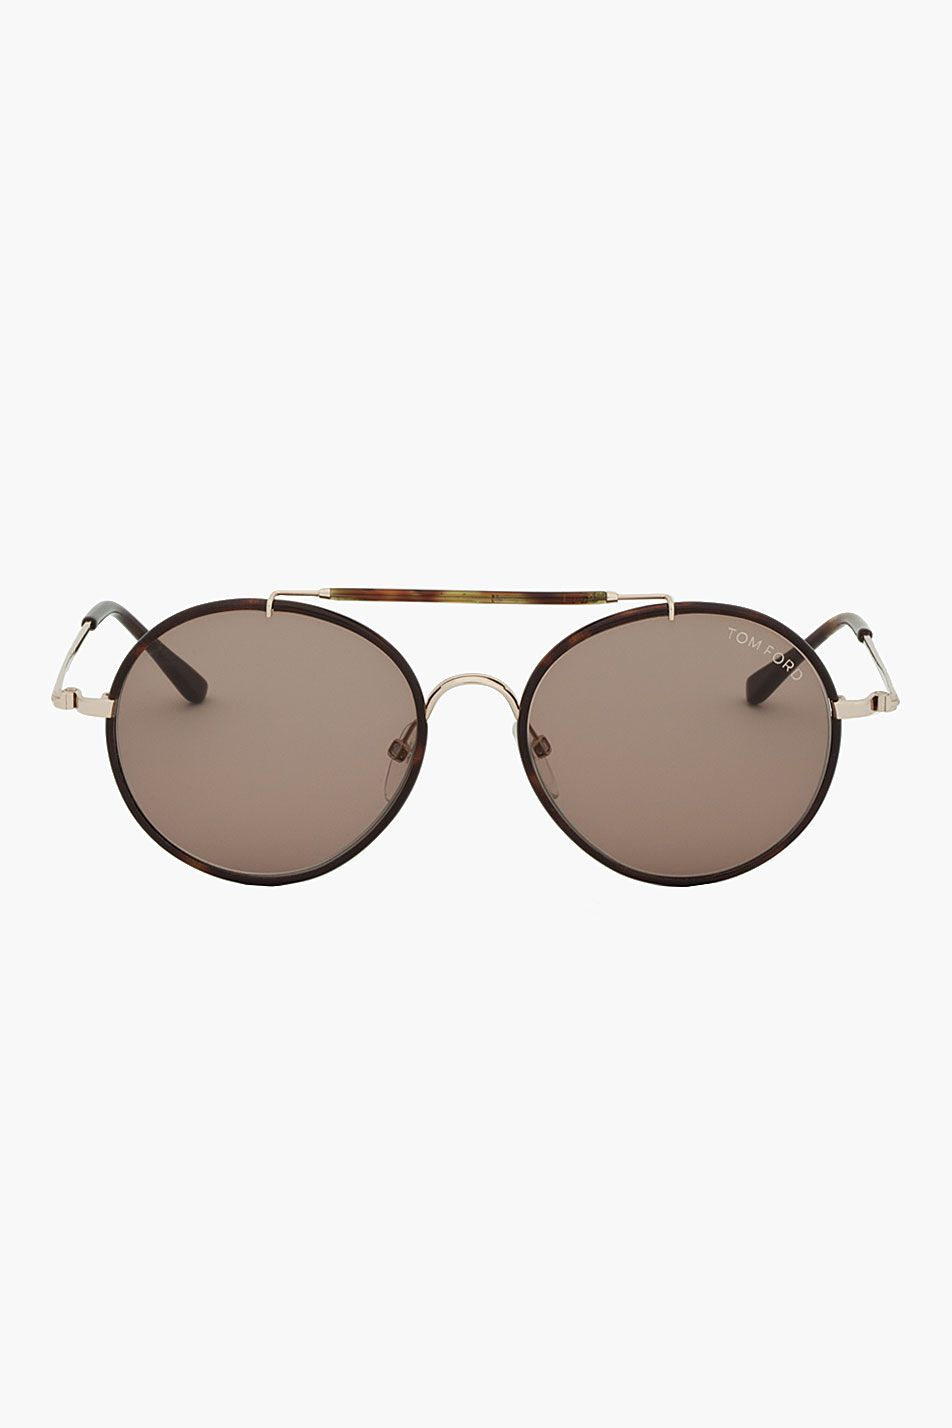 TOM FORD // Brown Camo FT0246 Teashade Sunglasses 31076M013003 Round thin frame teashade sunglasses in black and brown camouflage. Gold tone hardware. Metal nose bridge. Metal top bar with tonal plastic detail. Tonal plastic temple tips. Metal logo piece at temple tips. Logo print at temple interior in white. Size: 53.17 145. Made in Italy. $540 CAD